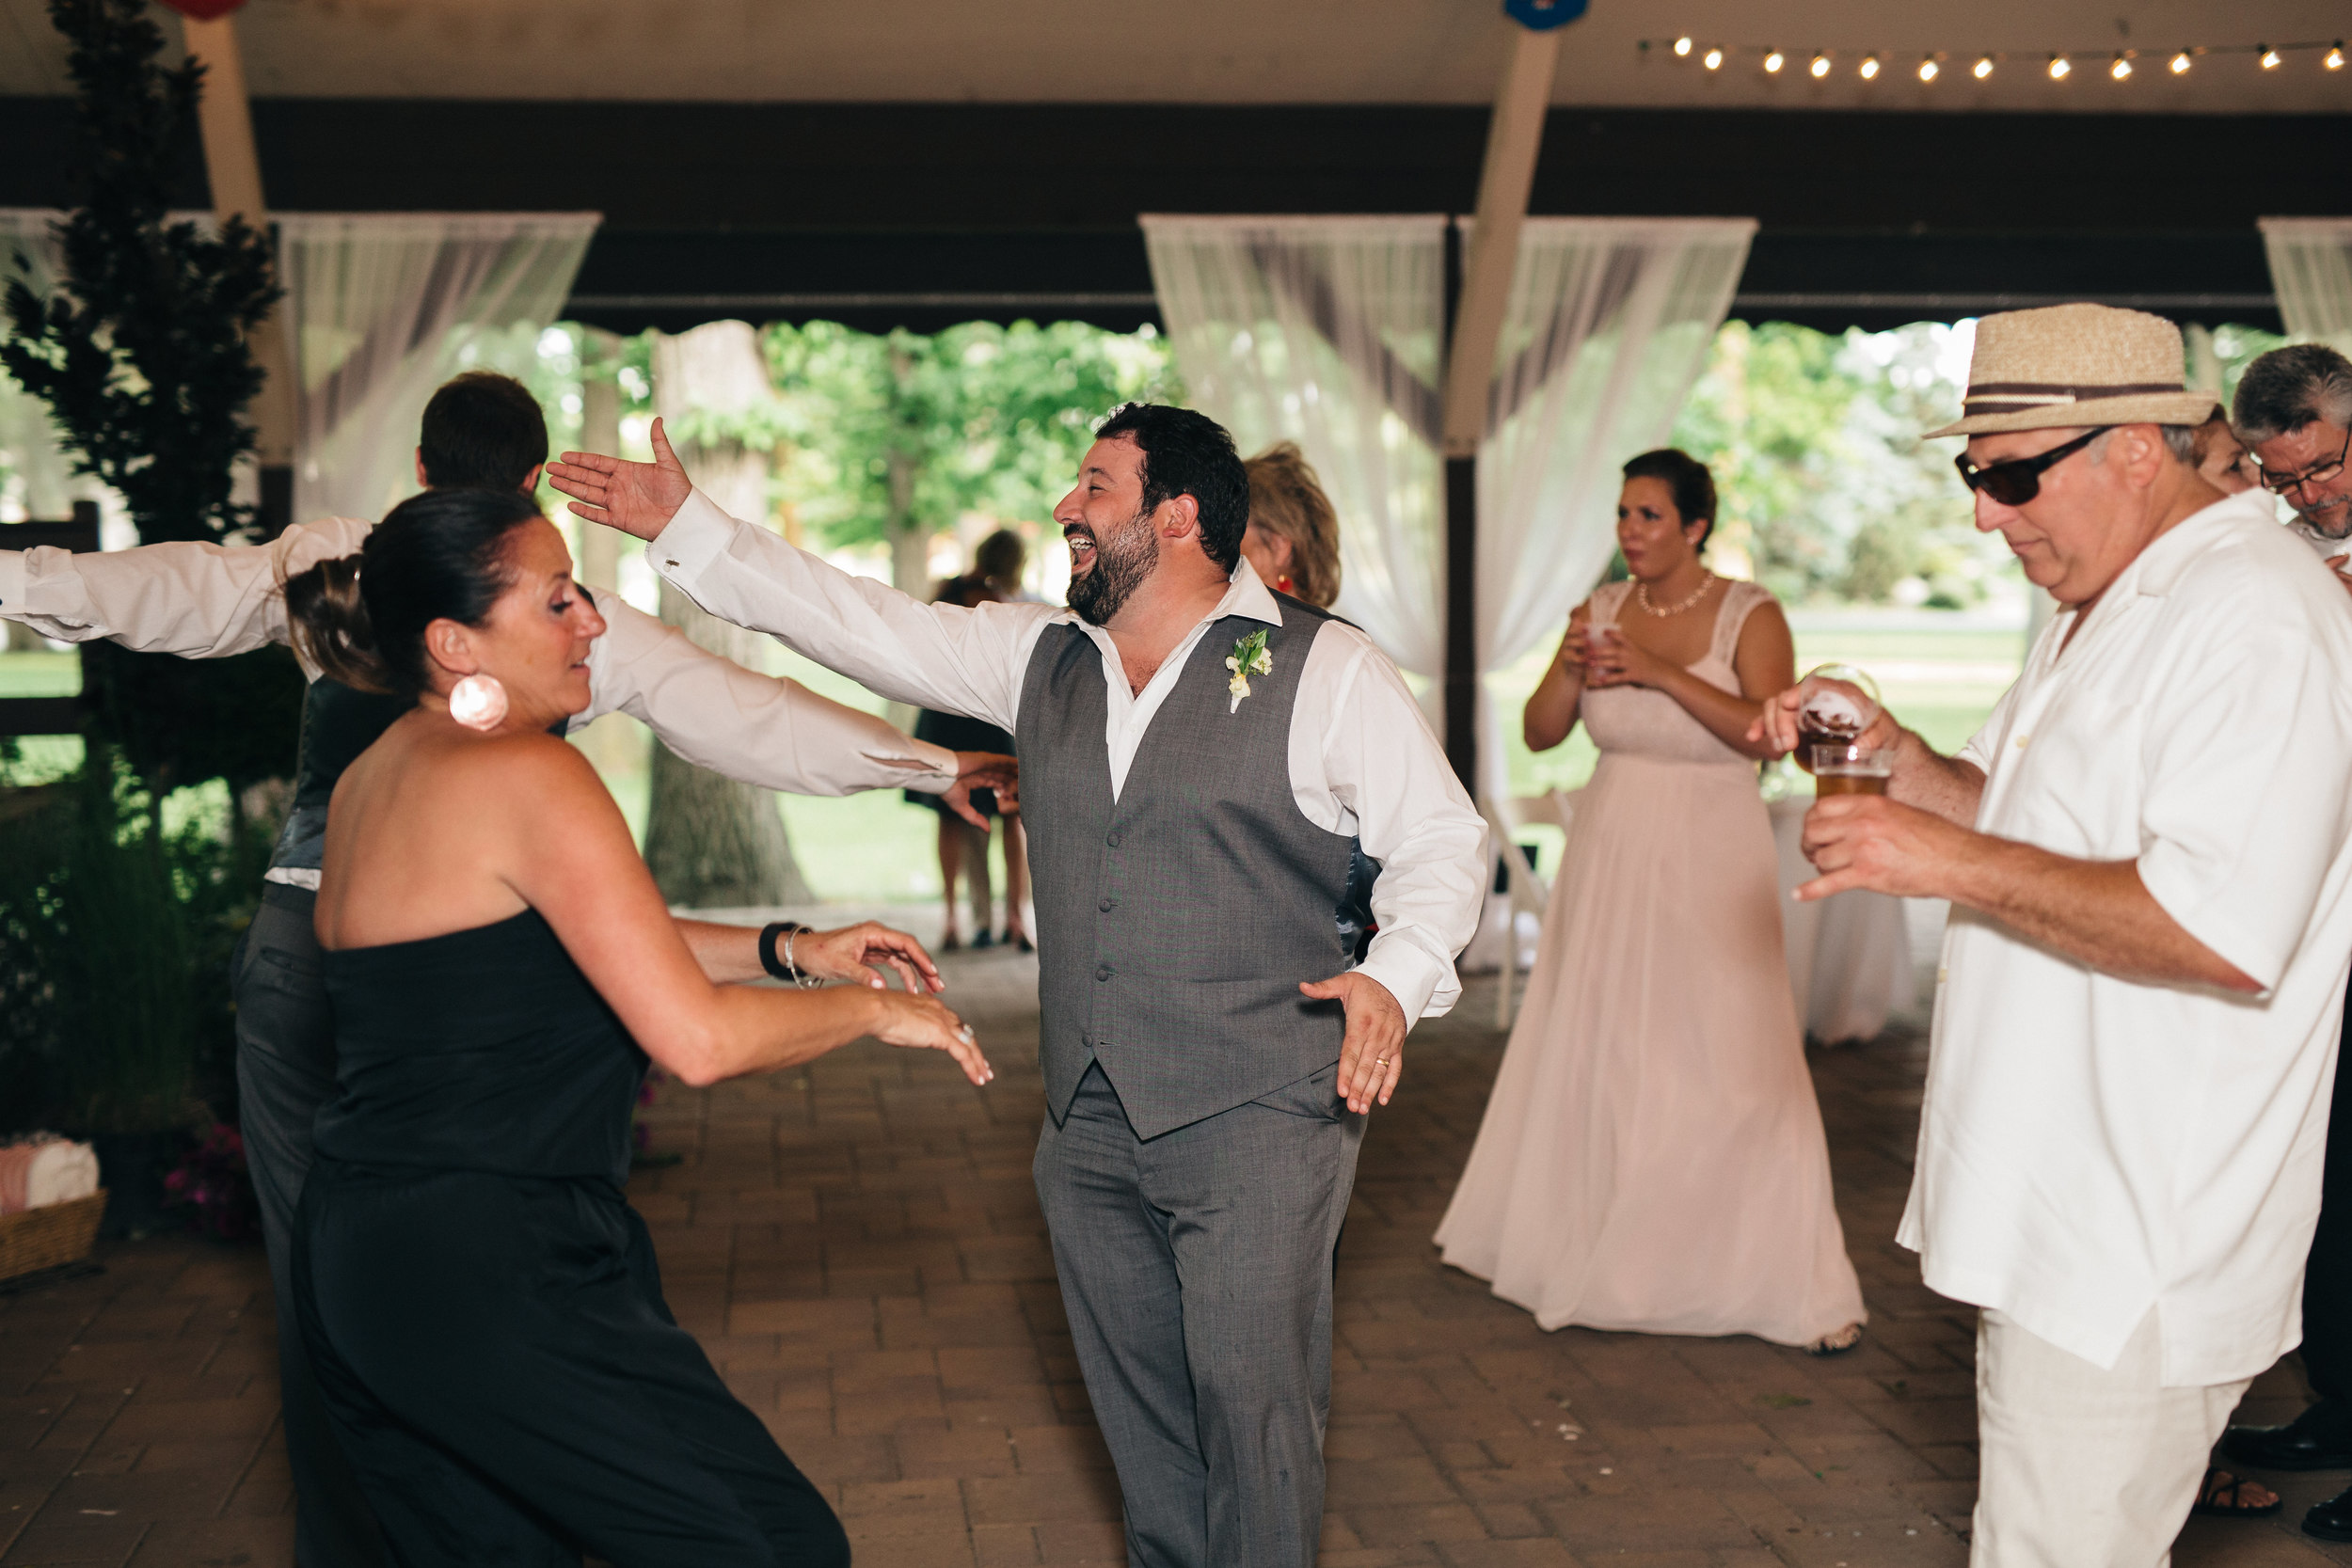 Groomsman dancing to Distant Cousinz band at wedding reception.